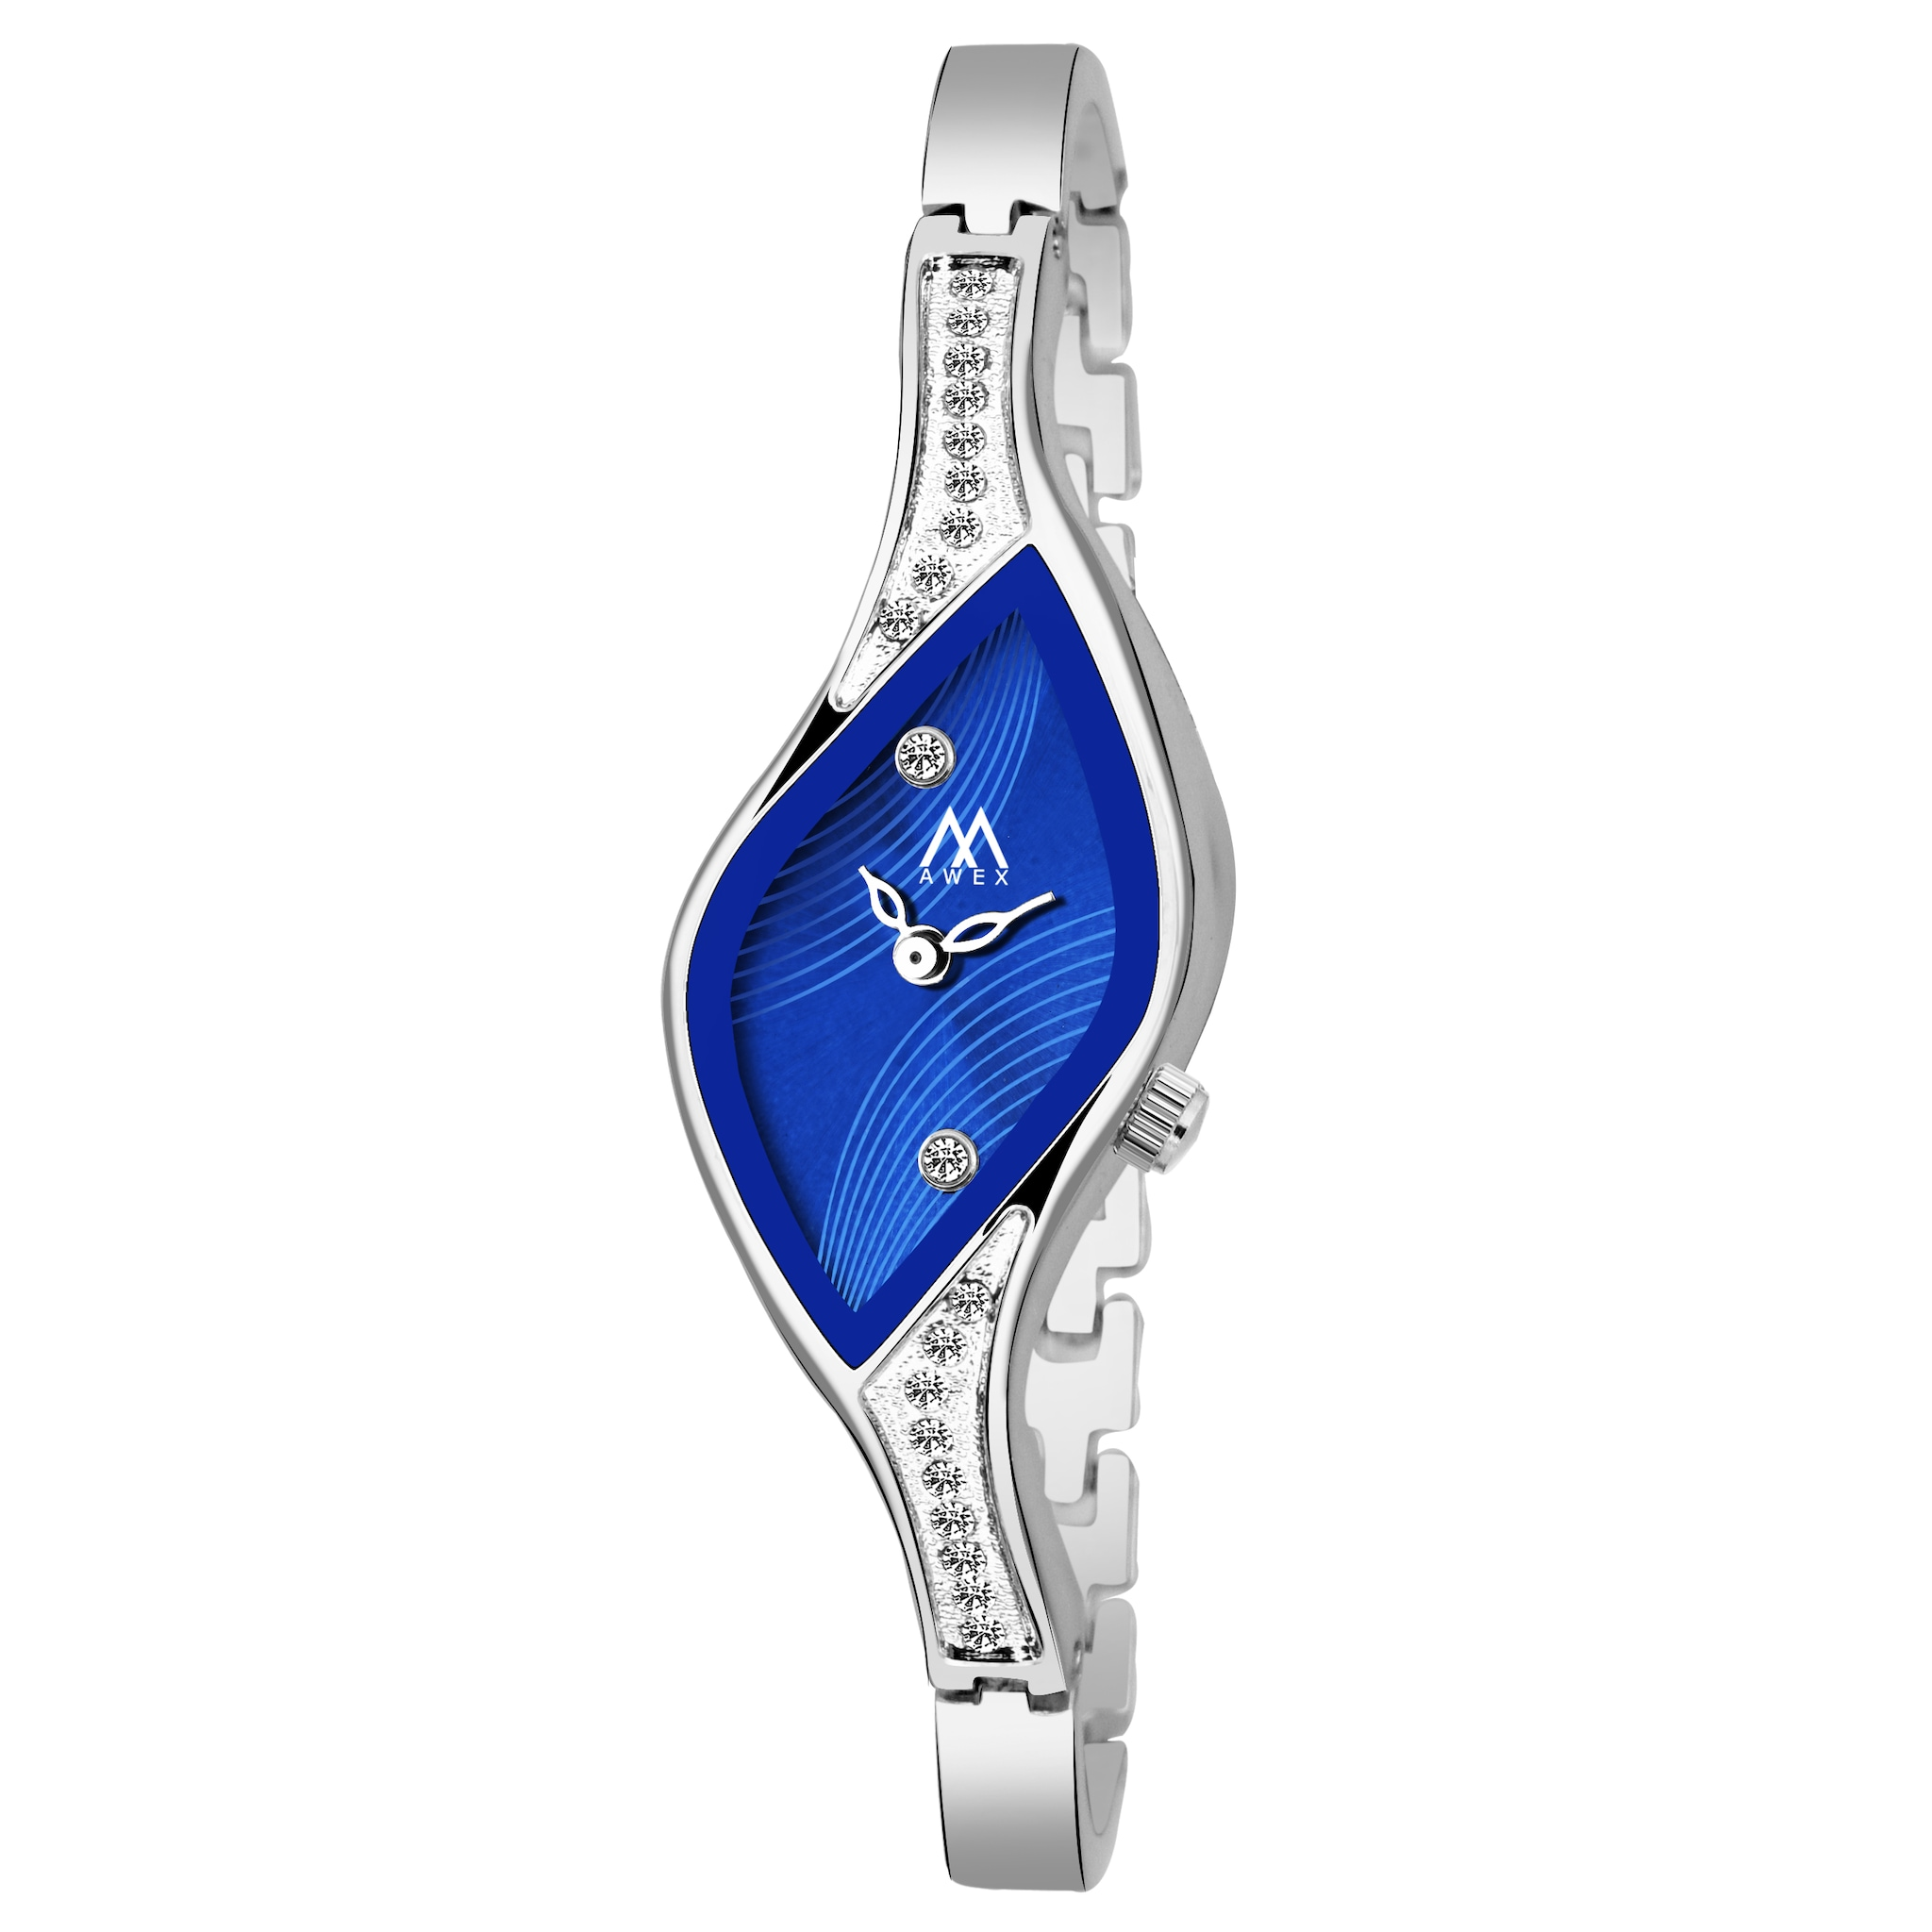 Awex  New Arrival Luxury Blue Dile With Silver Strap For Girl & Woman Analog Watch - For Women